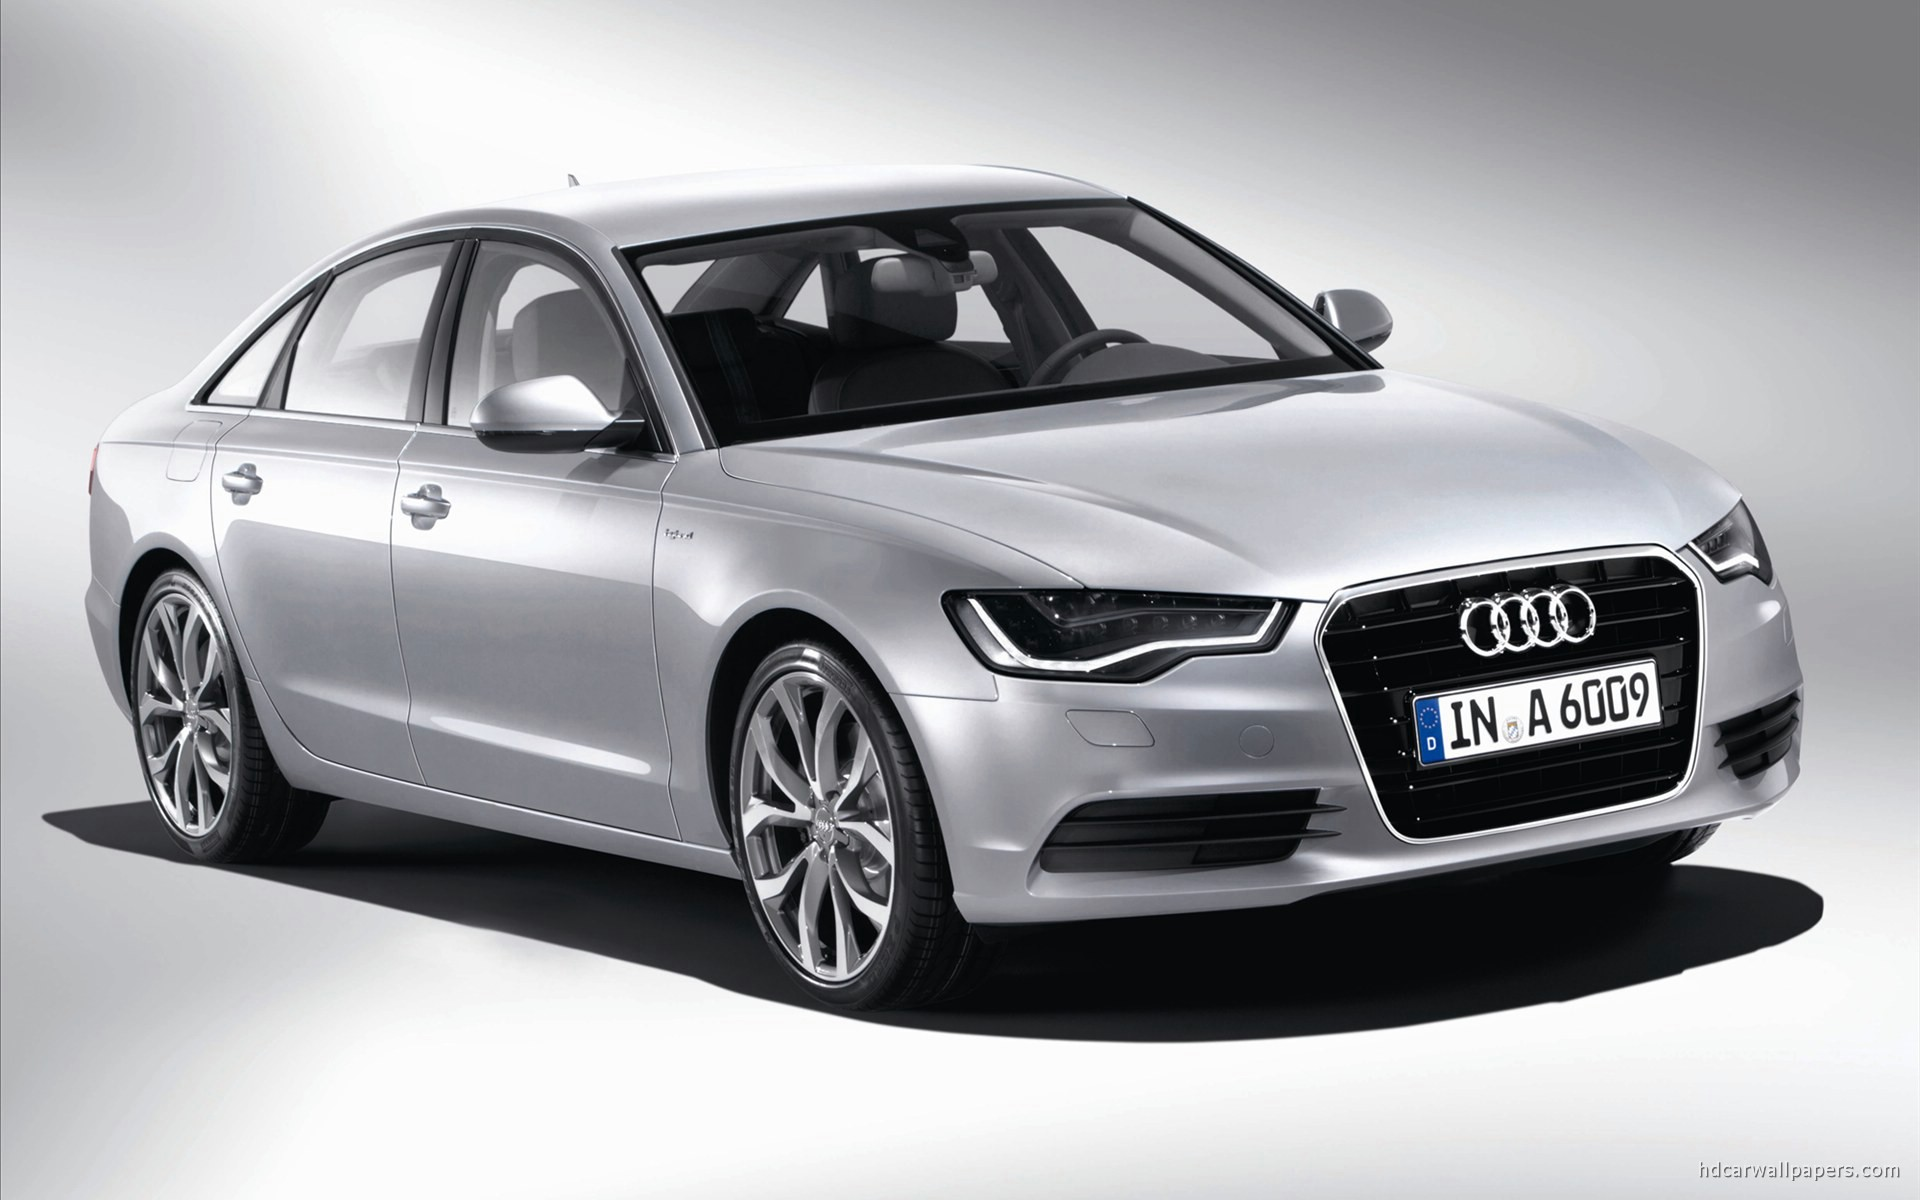 2012 audi a6 hybdid wallpaper hd car wallpapers id 1800. Black Bedroom Furniture Sets. Home Design Ideas